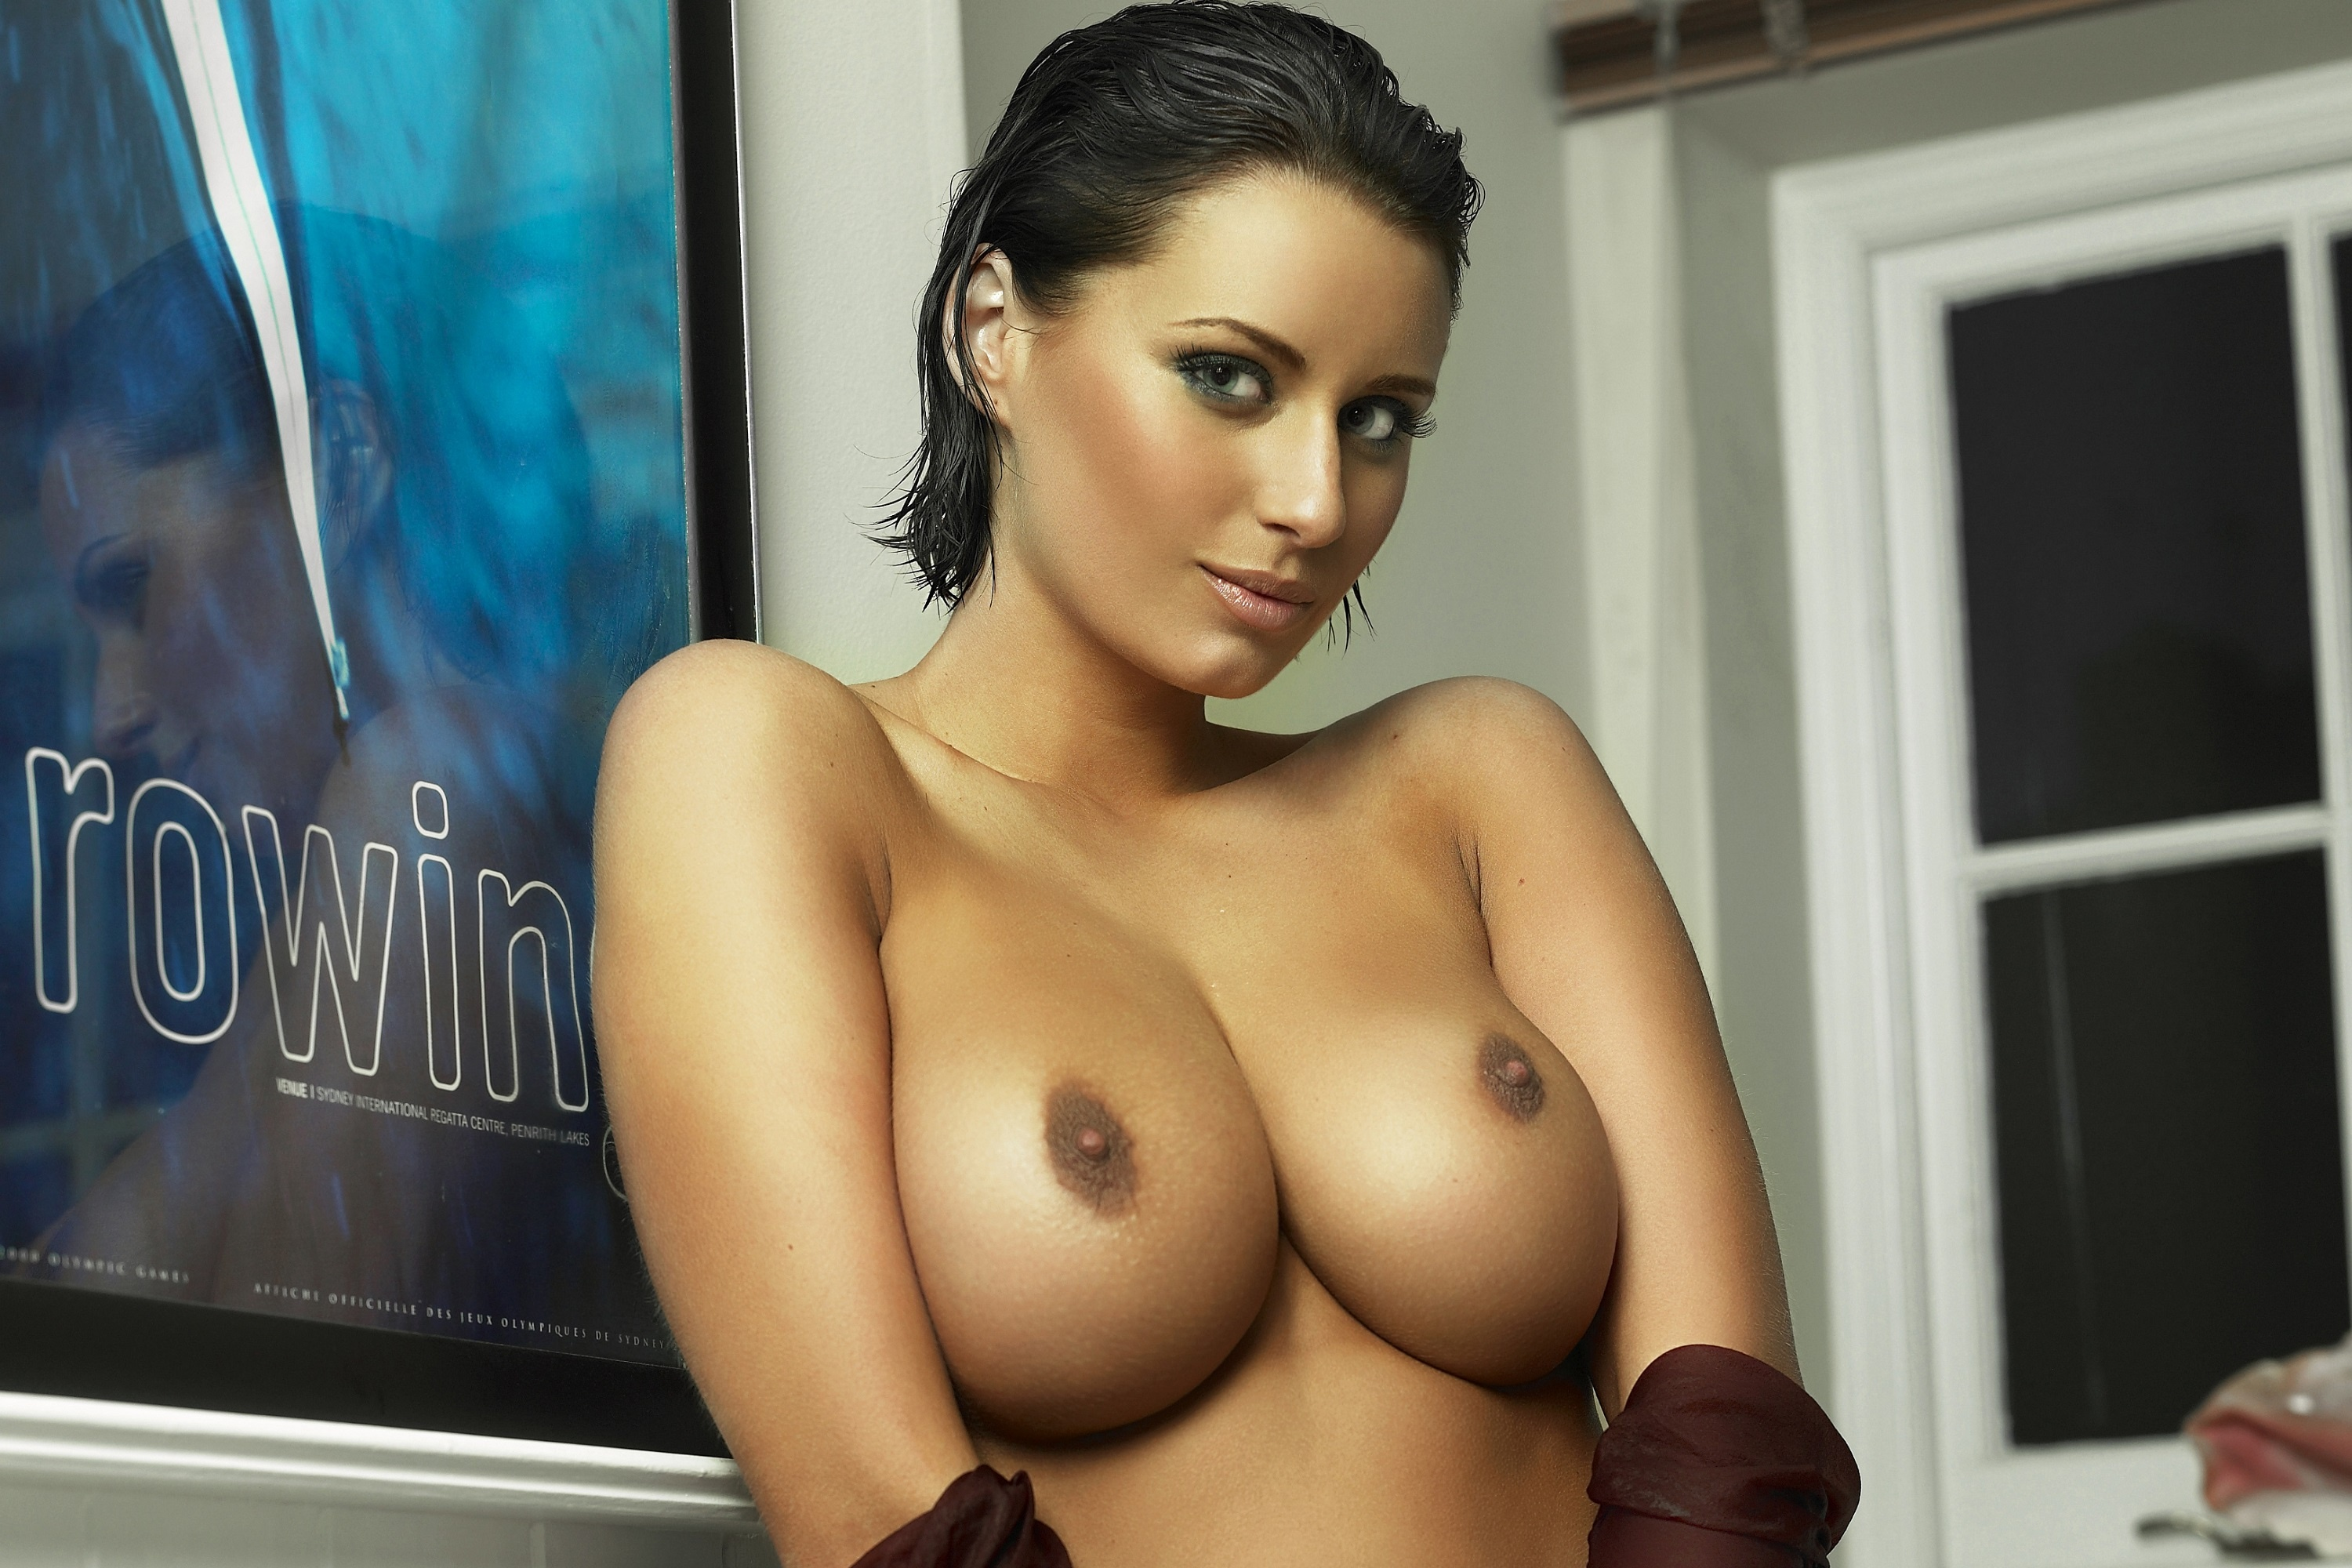 Opinion very sammy braddy big boobs